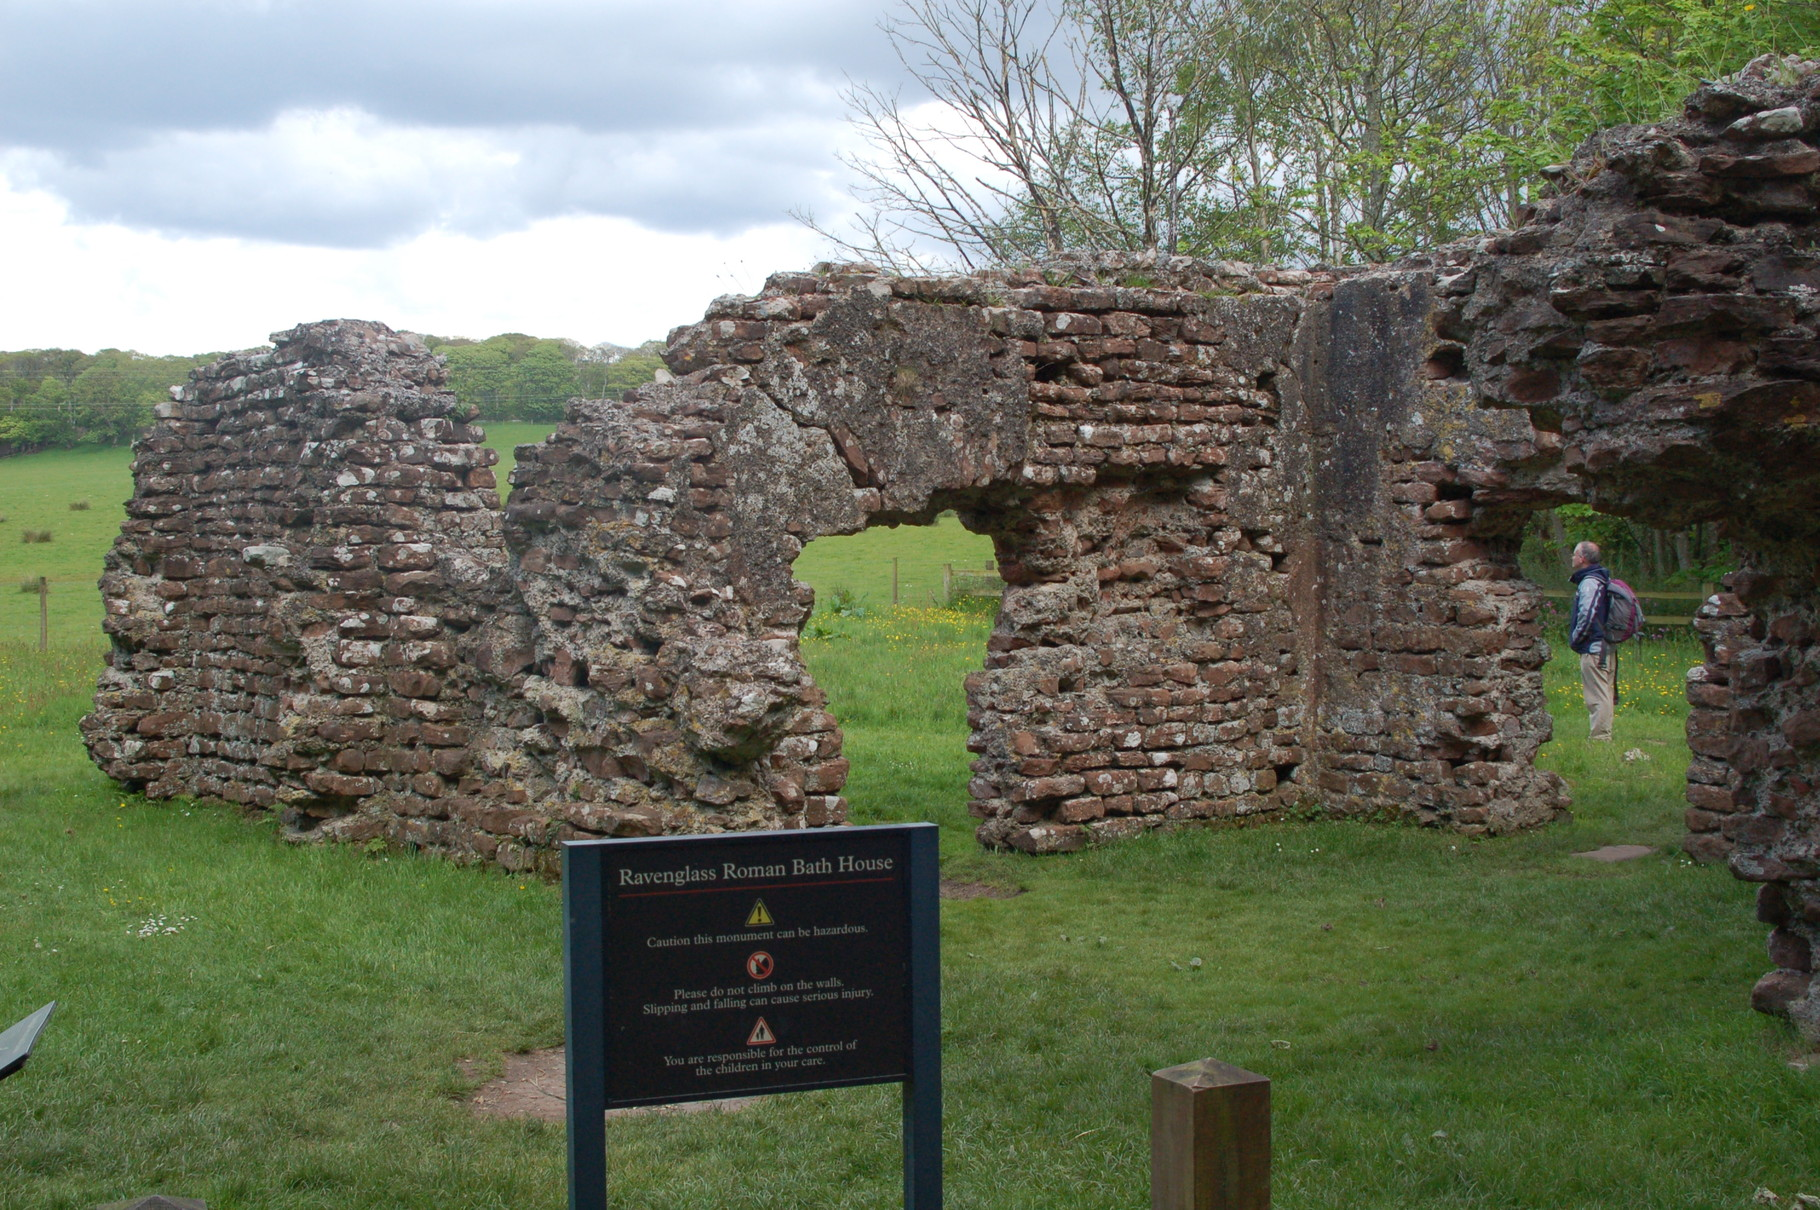 Ravenglass Roman Baths